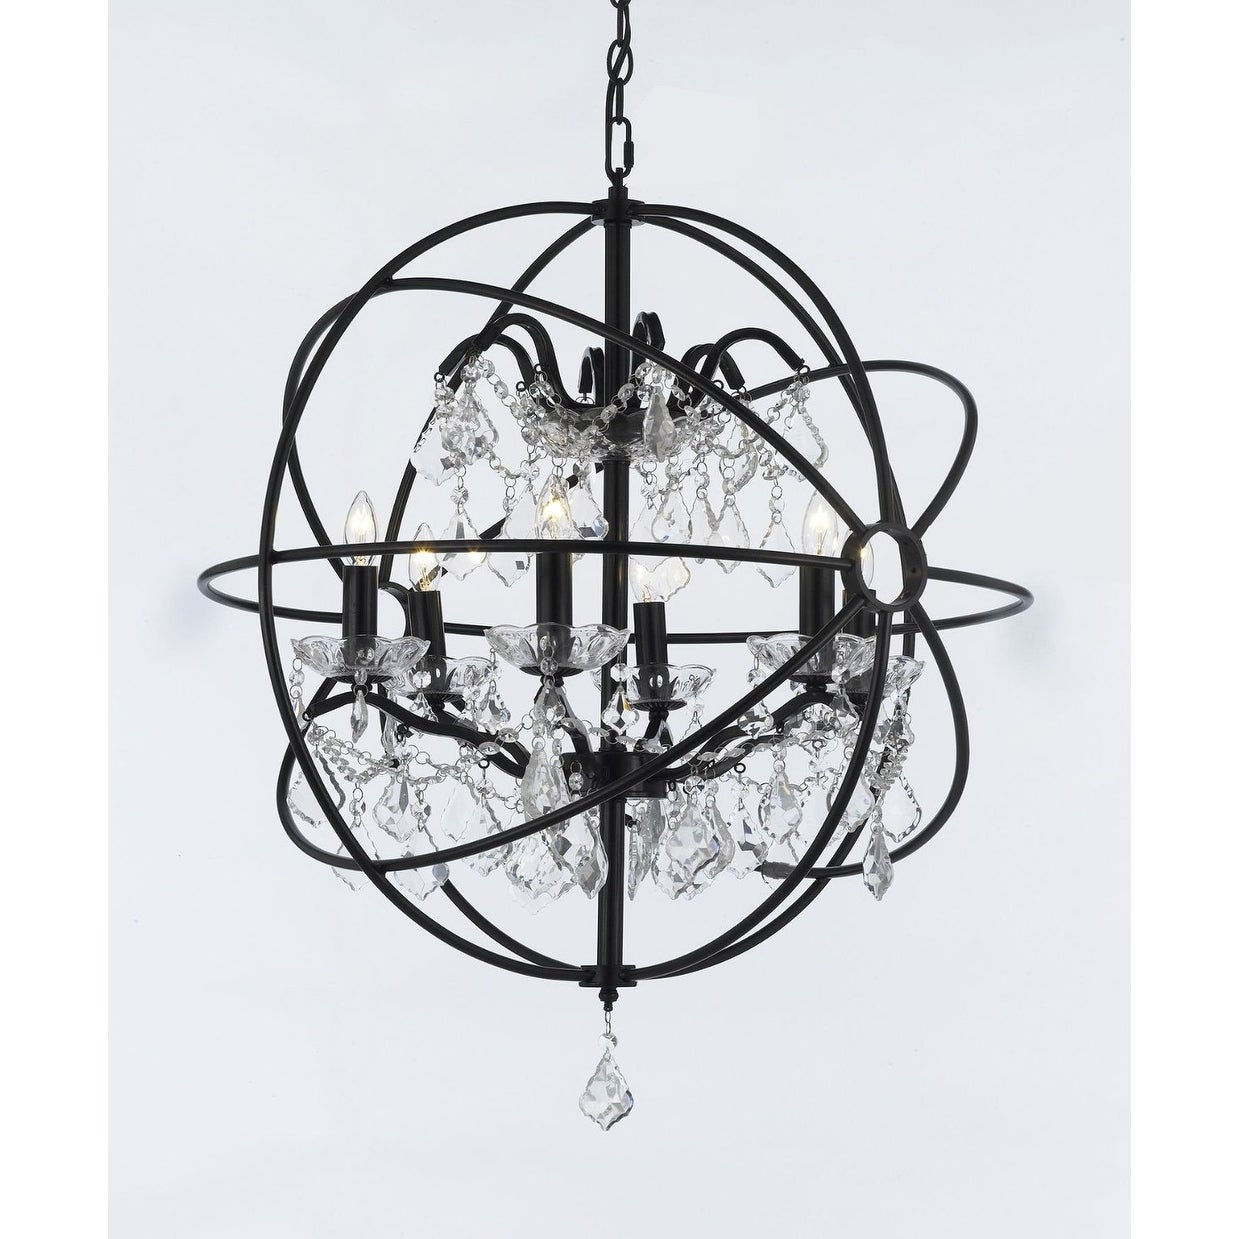 Spherical Orb Chandelier Wrought Iron